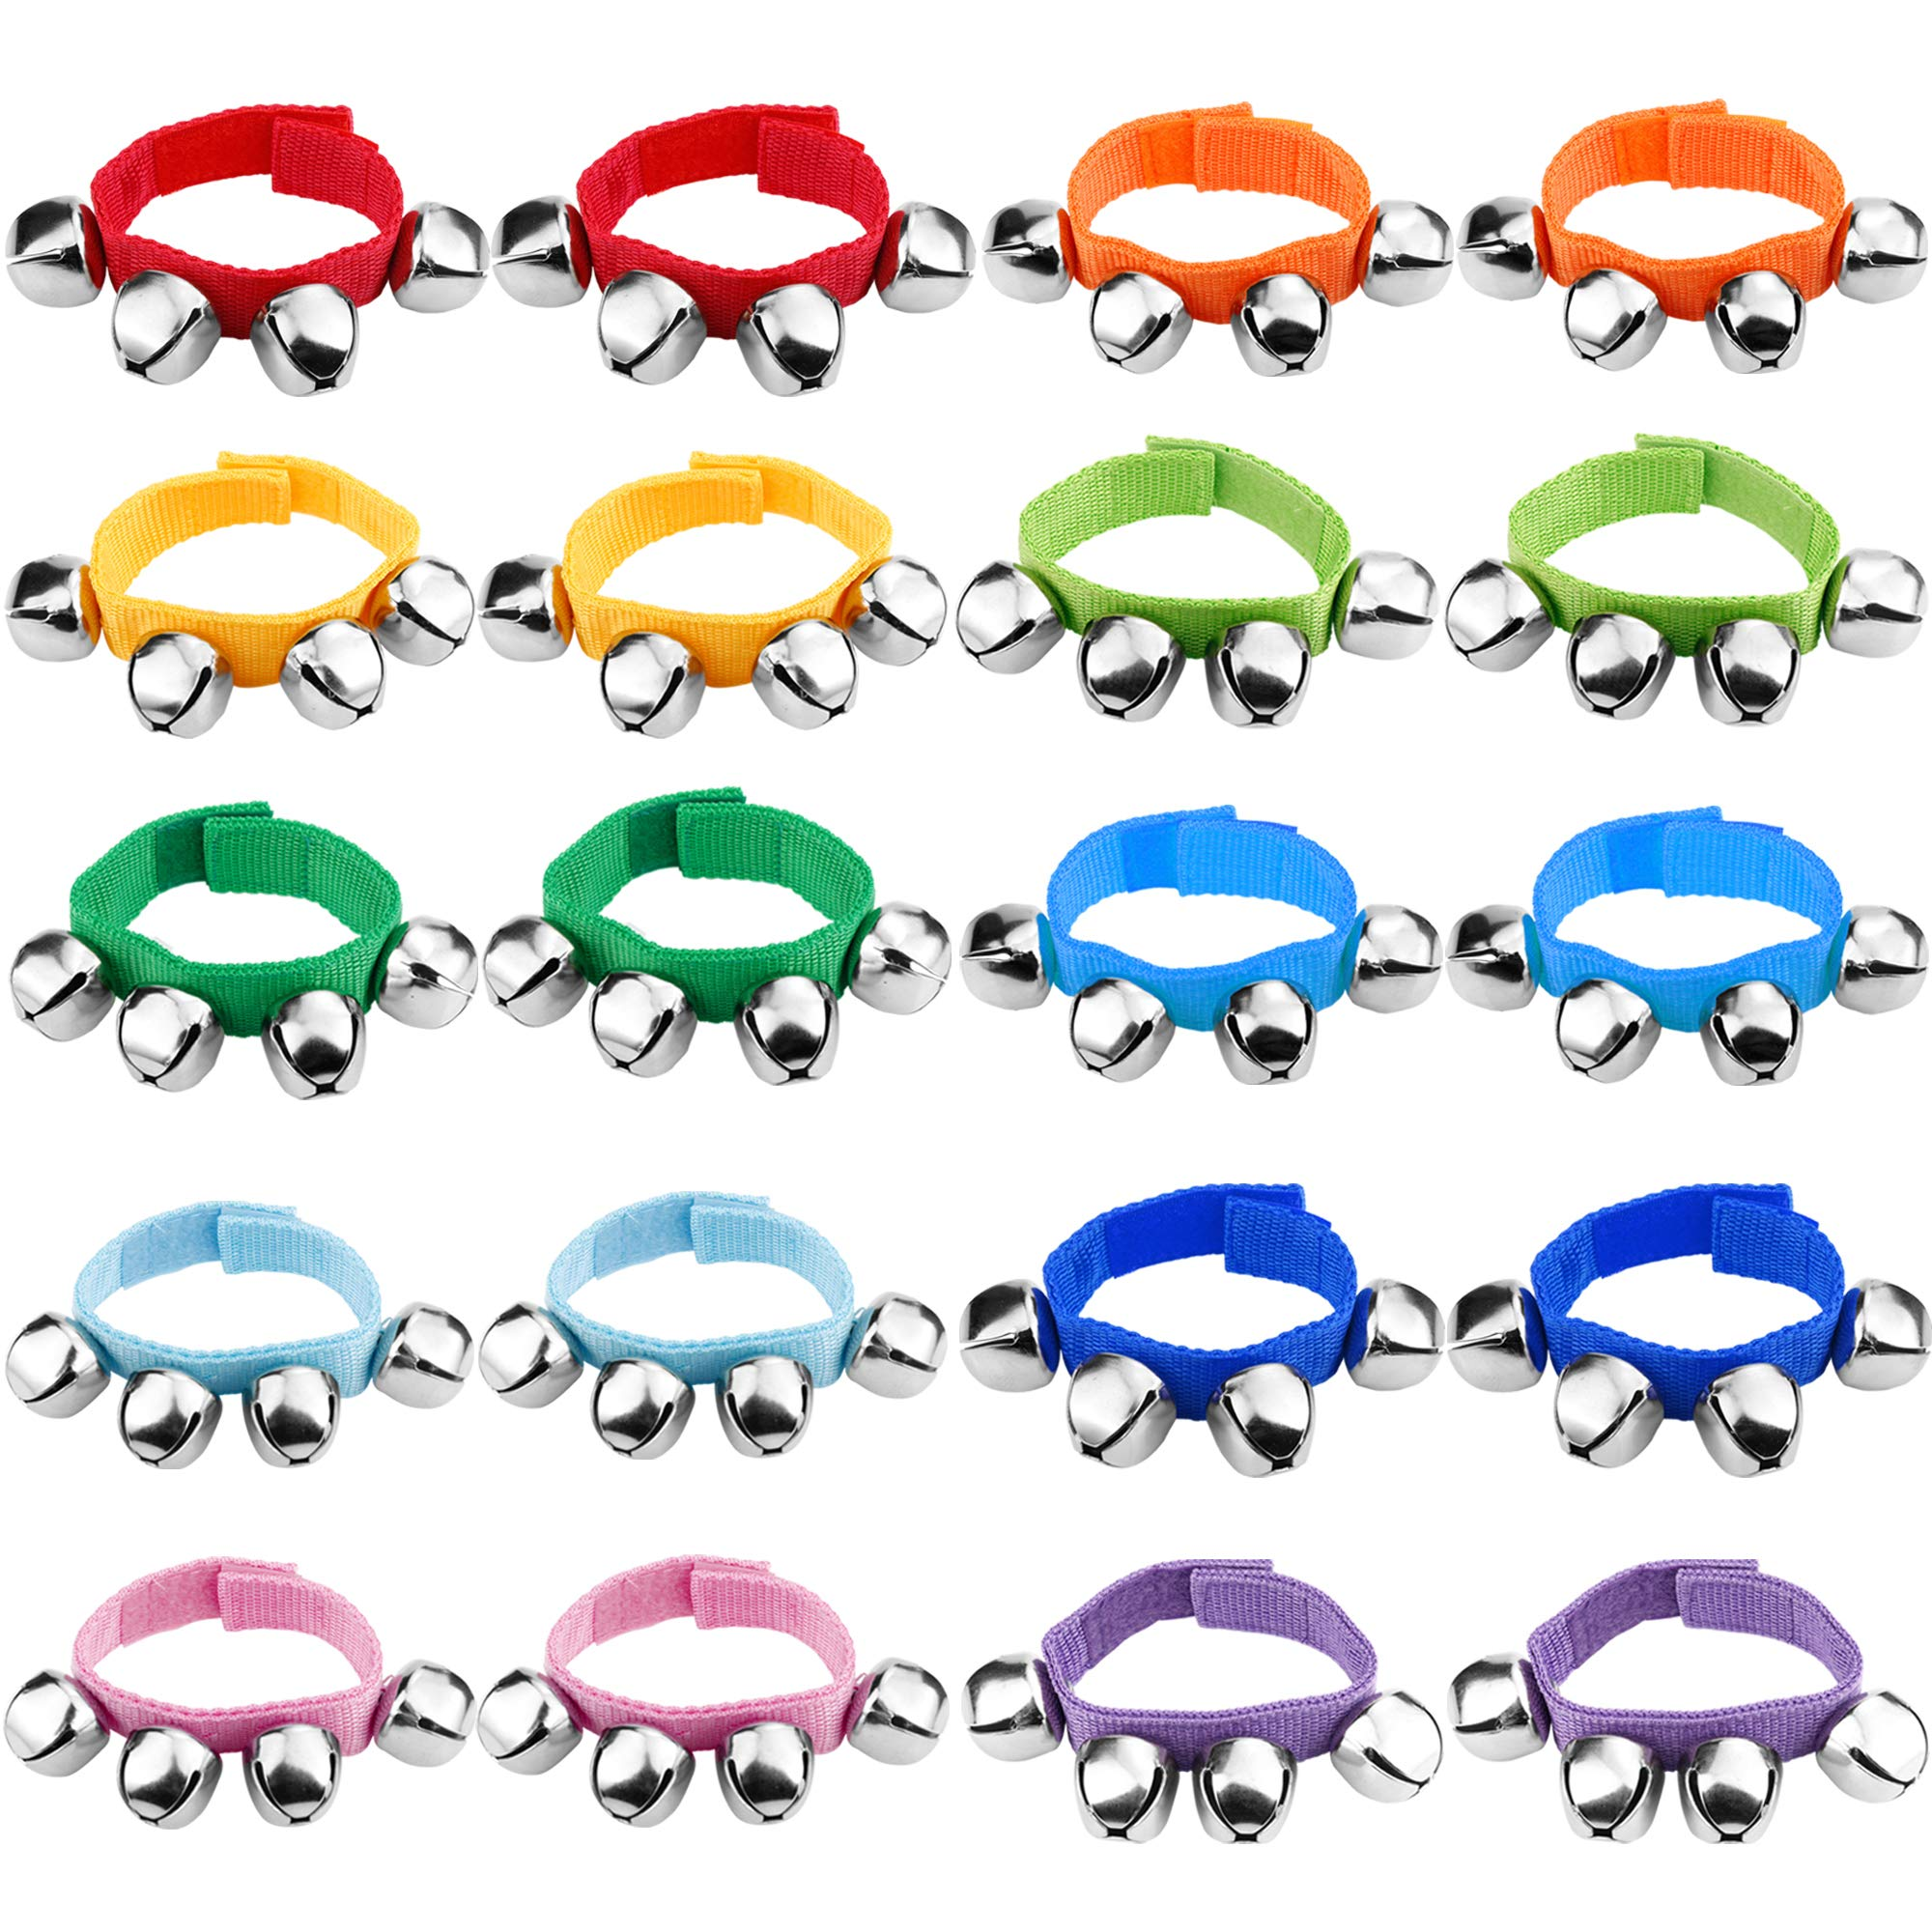 Augshy 20 Pcs Wrist Band Jingle Bells Musical Rhythm Toys,10 Colors,Musical Instruments for School by Augshy